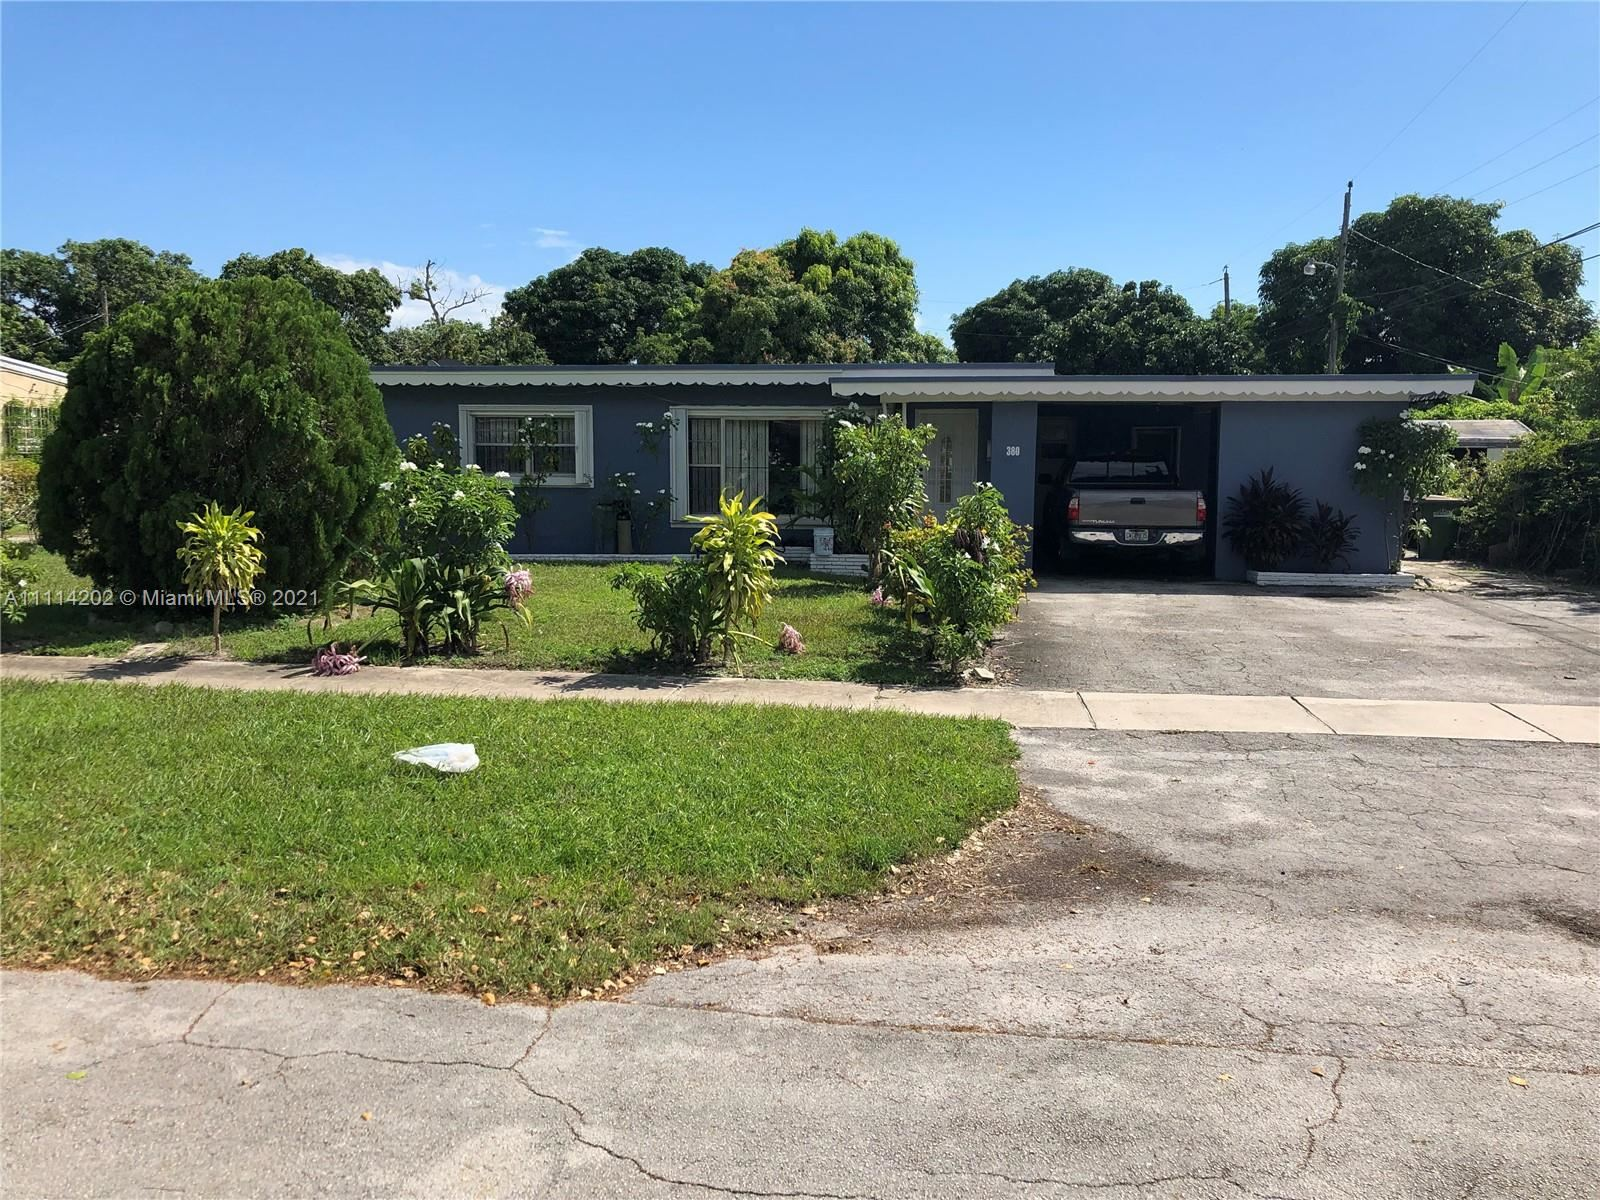 Photo of 380 NW 122nd St, North Miami, FL 33168 (MLS # A11114202)